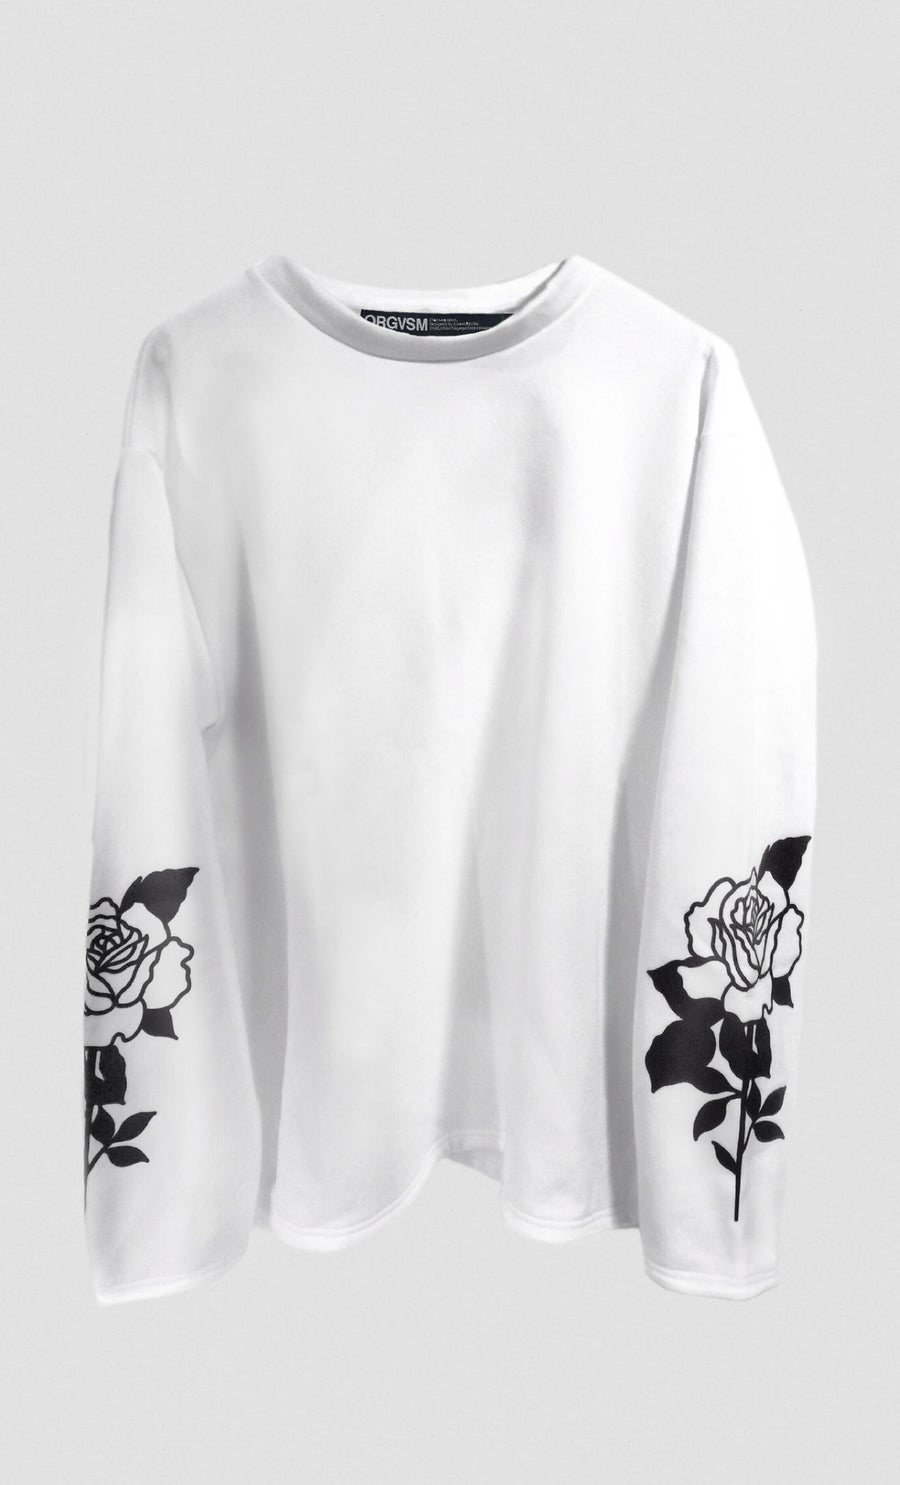 Image of ORGVSM WHITE LONG SLEEVE //PRE ORDER